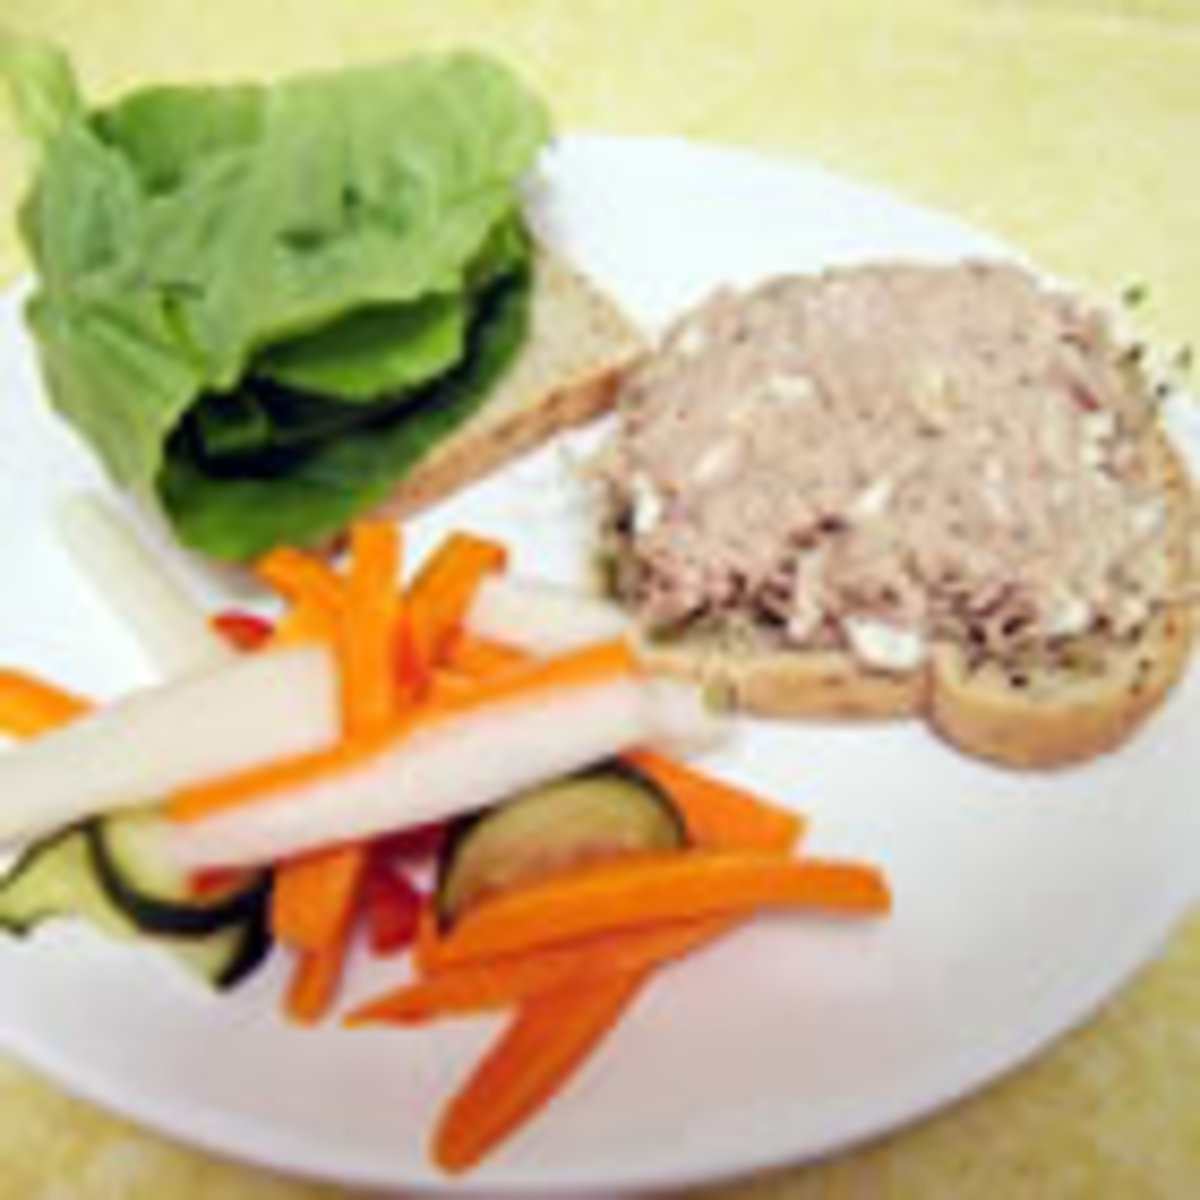 Herbal Tuna Salad (from Allrecipes)